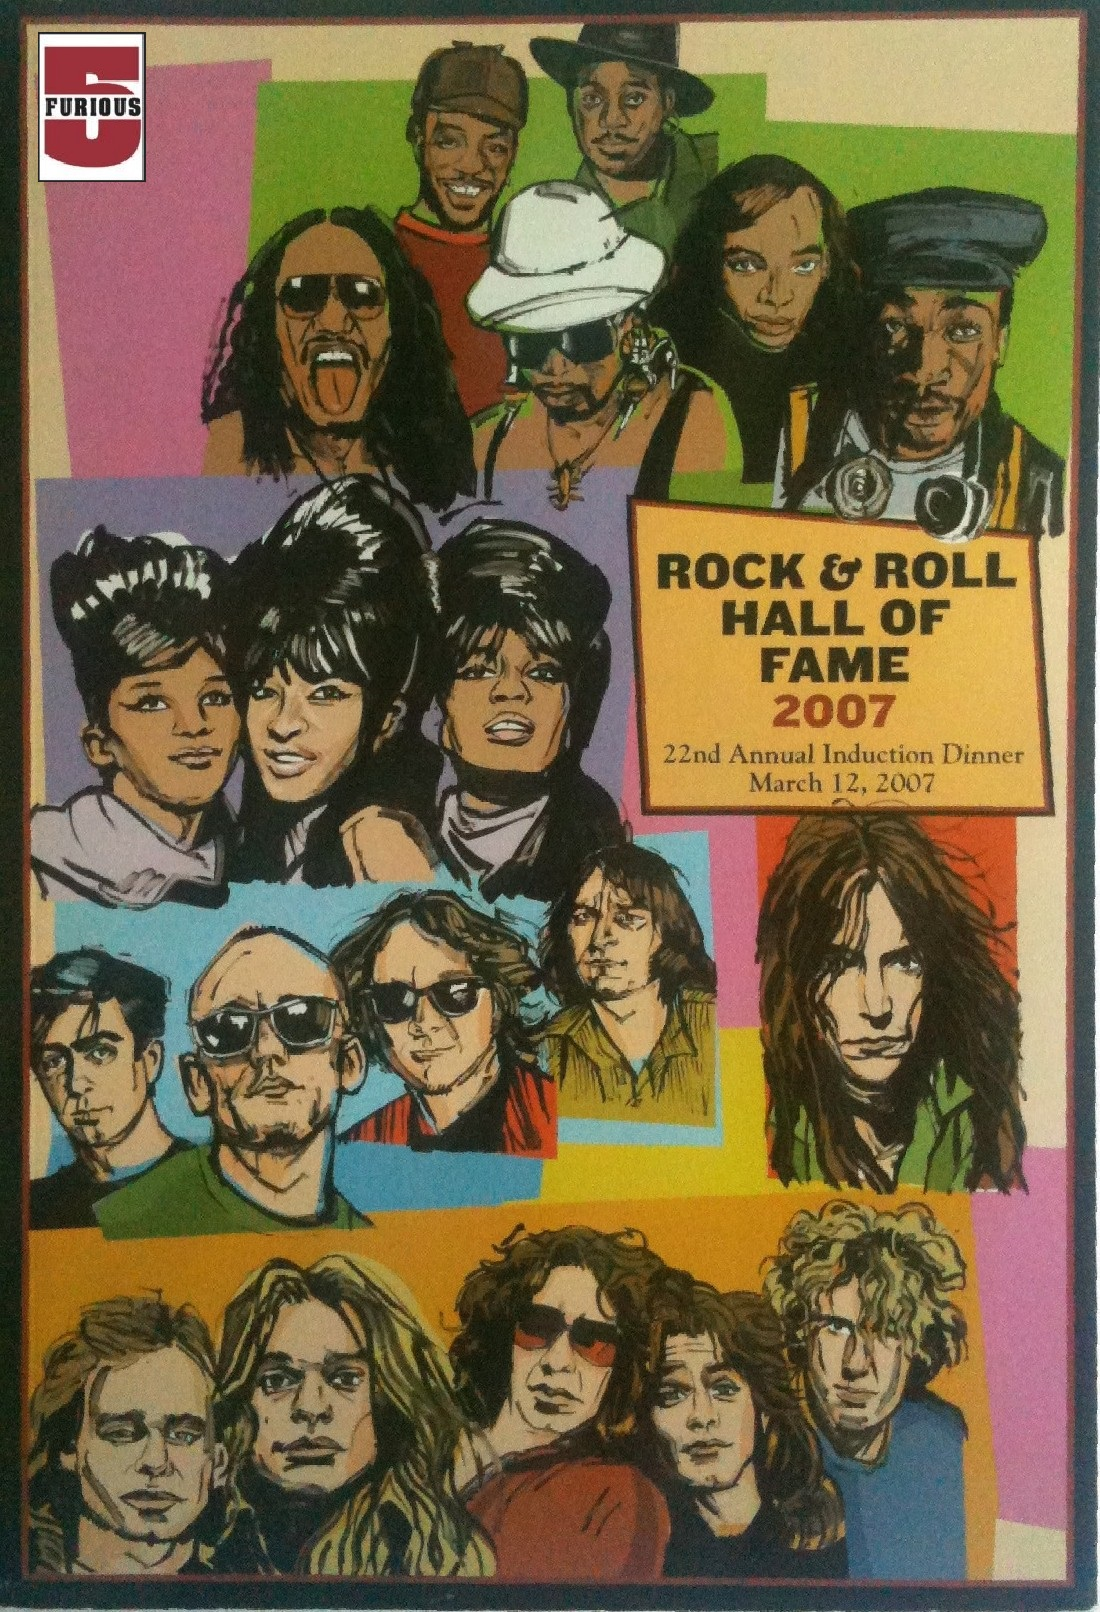 Rock and Roll Hall of Fame 2007 Program 03.JPG